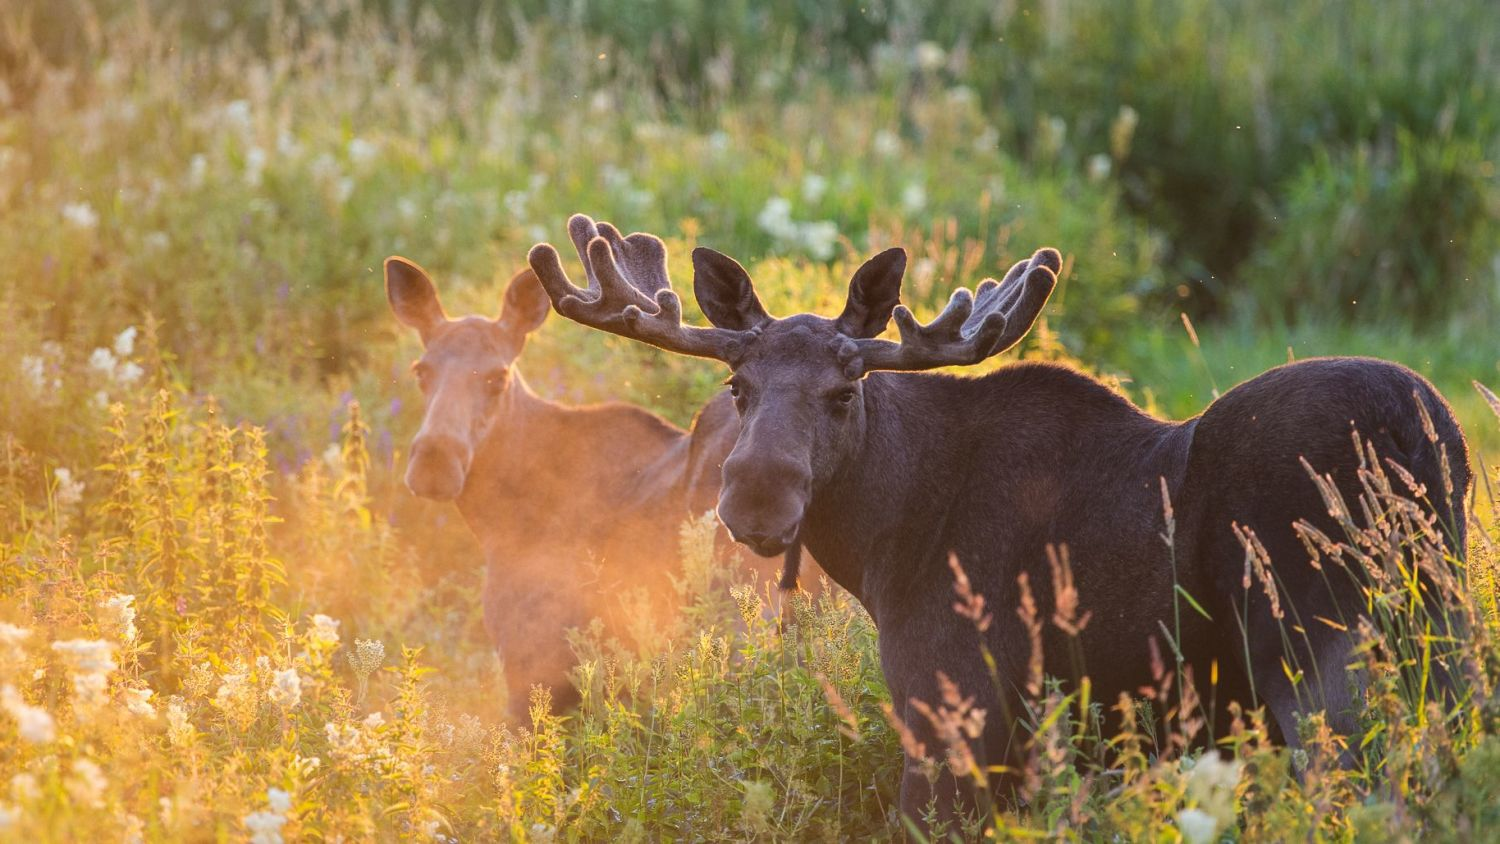 Two mooses. Photo Torbjørn Martinsen/visitnorway.com